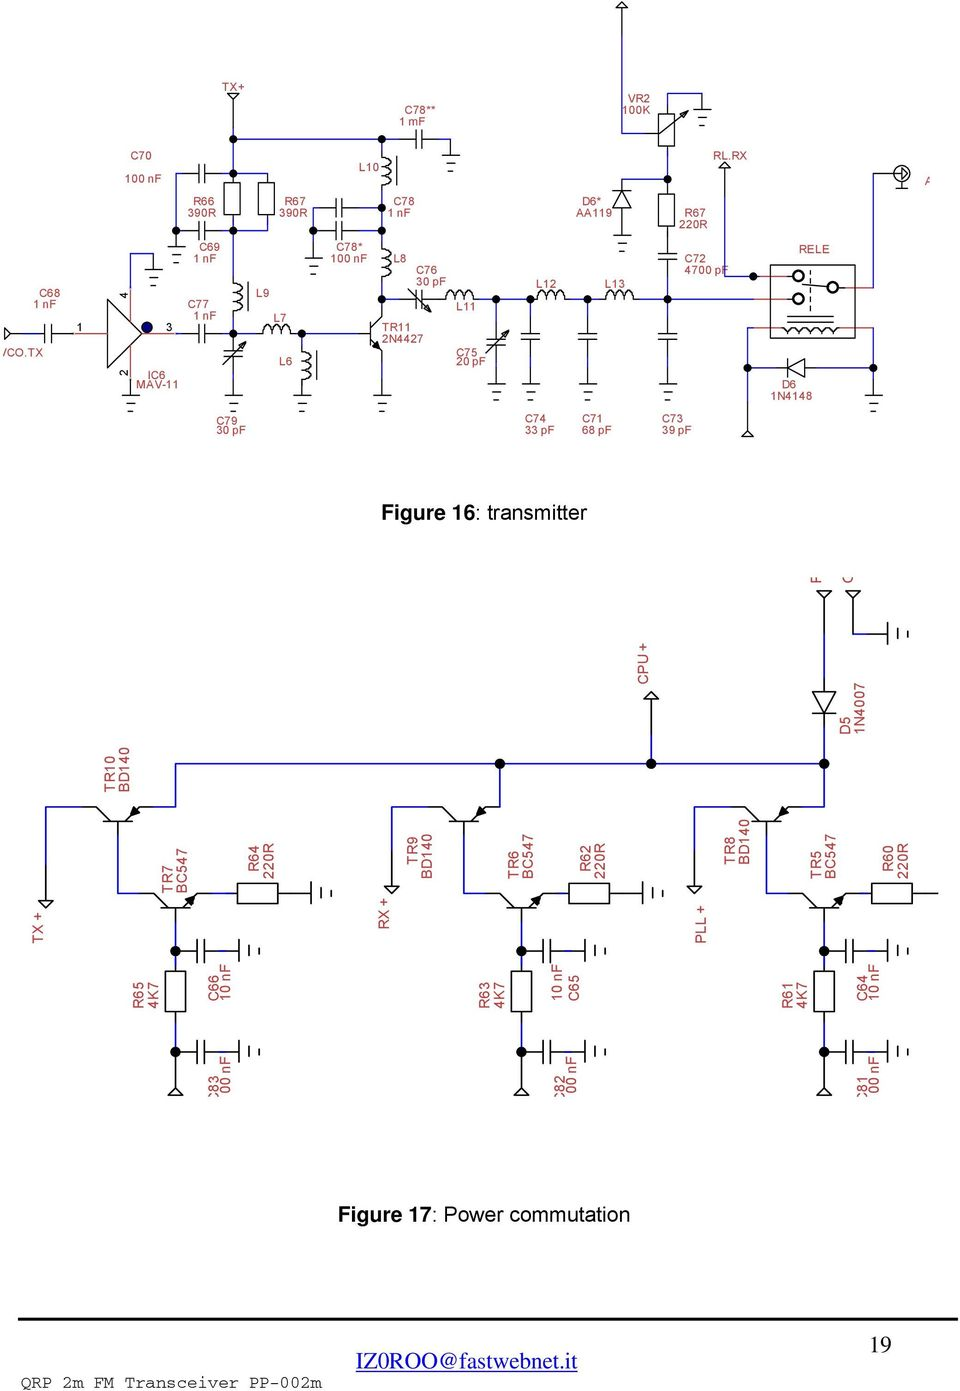 Qrp 2m Fm Transceiver Project Pdf Tr8 Wiring Diagram Pf C73 39 Figure 16 Transmitter C83 00 Nf C82 C81